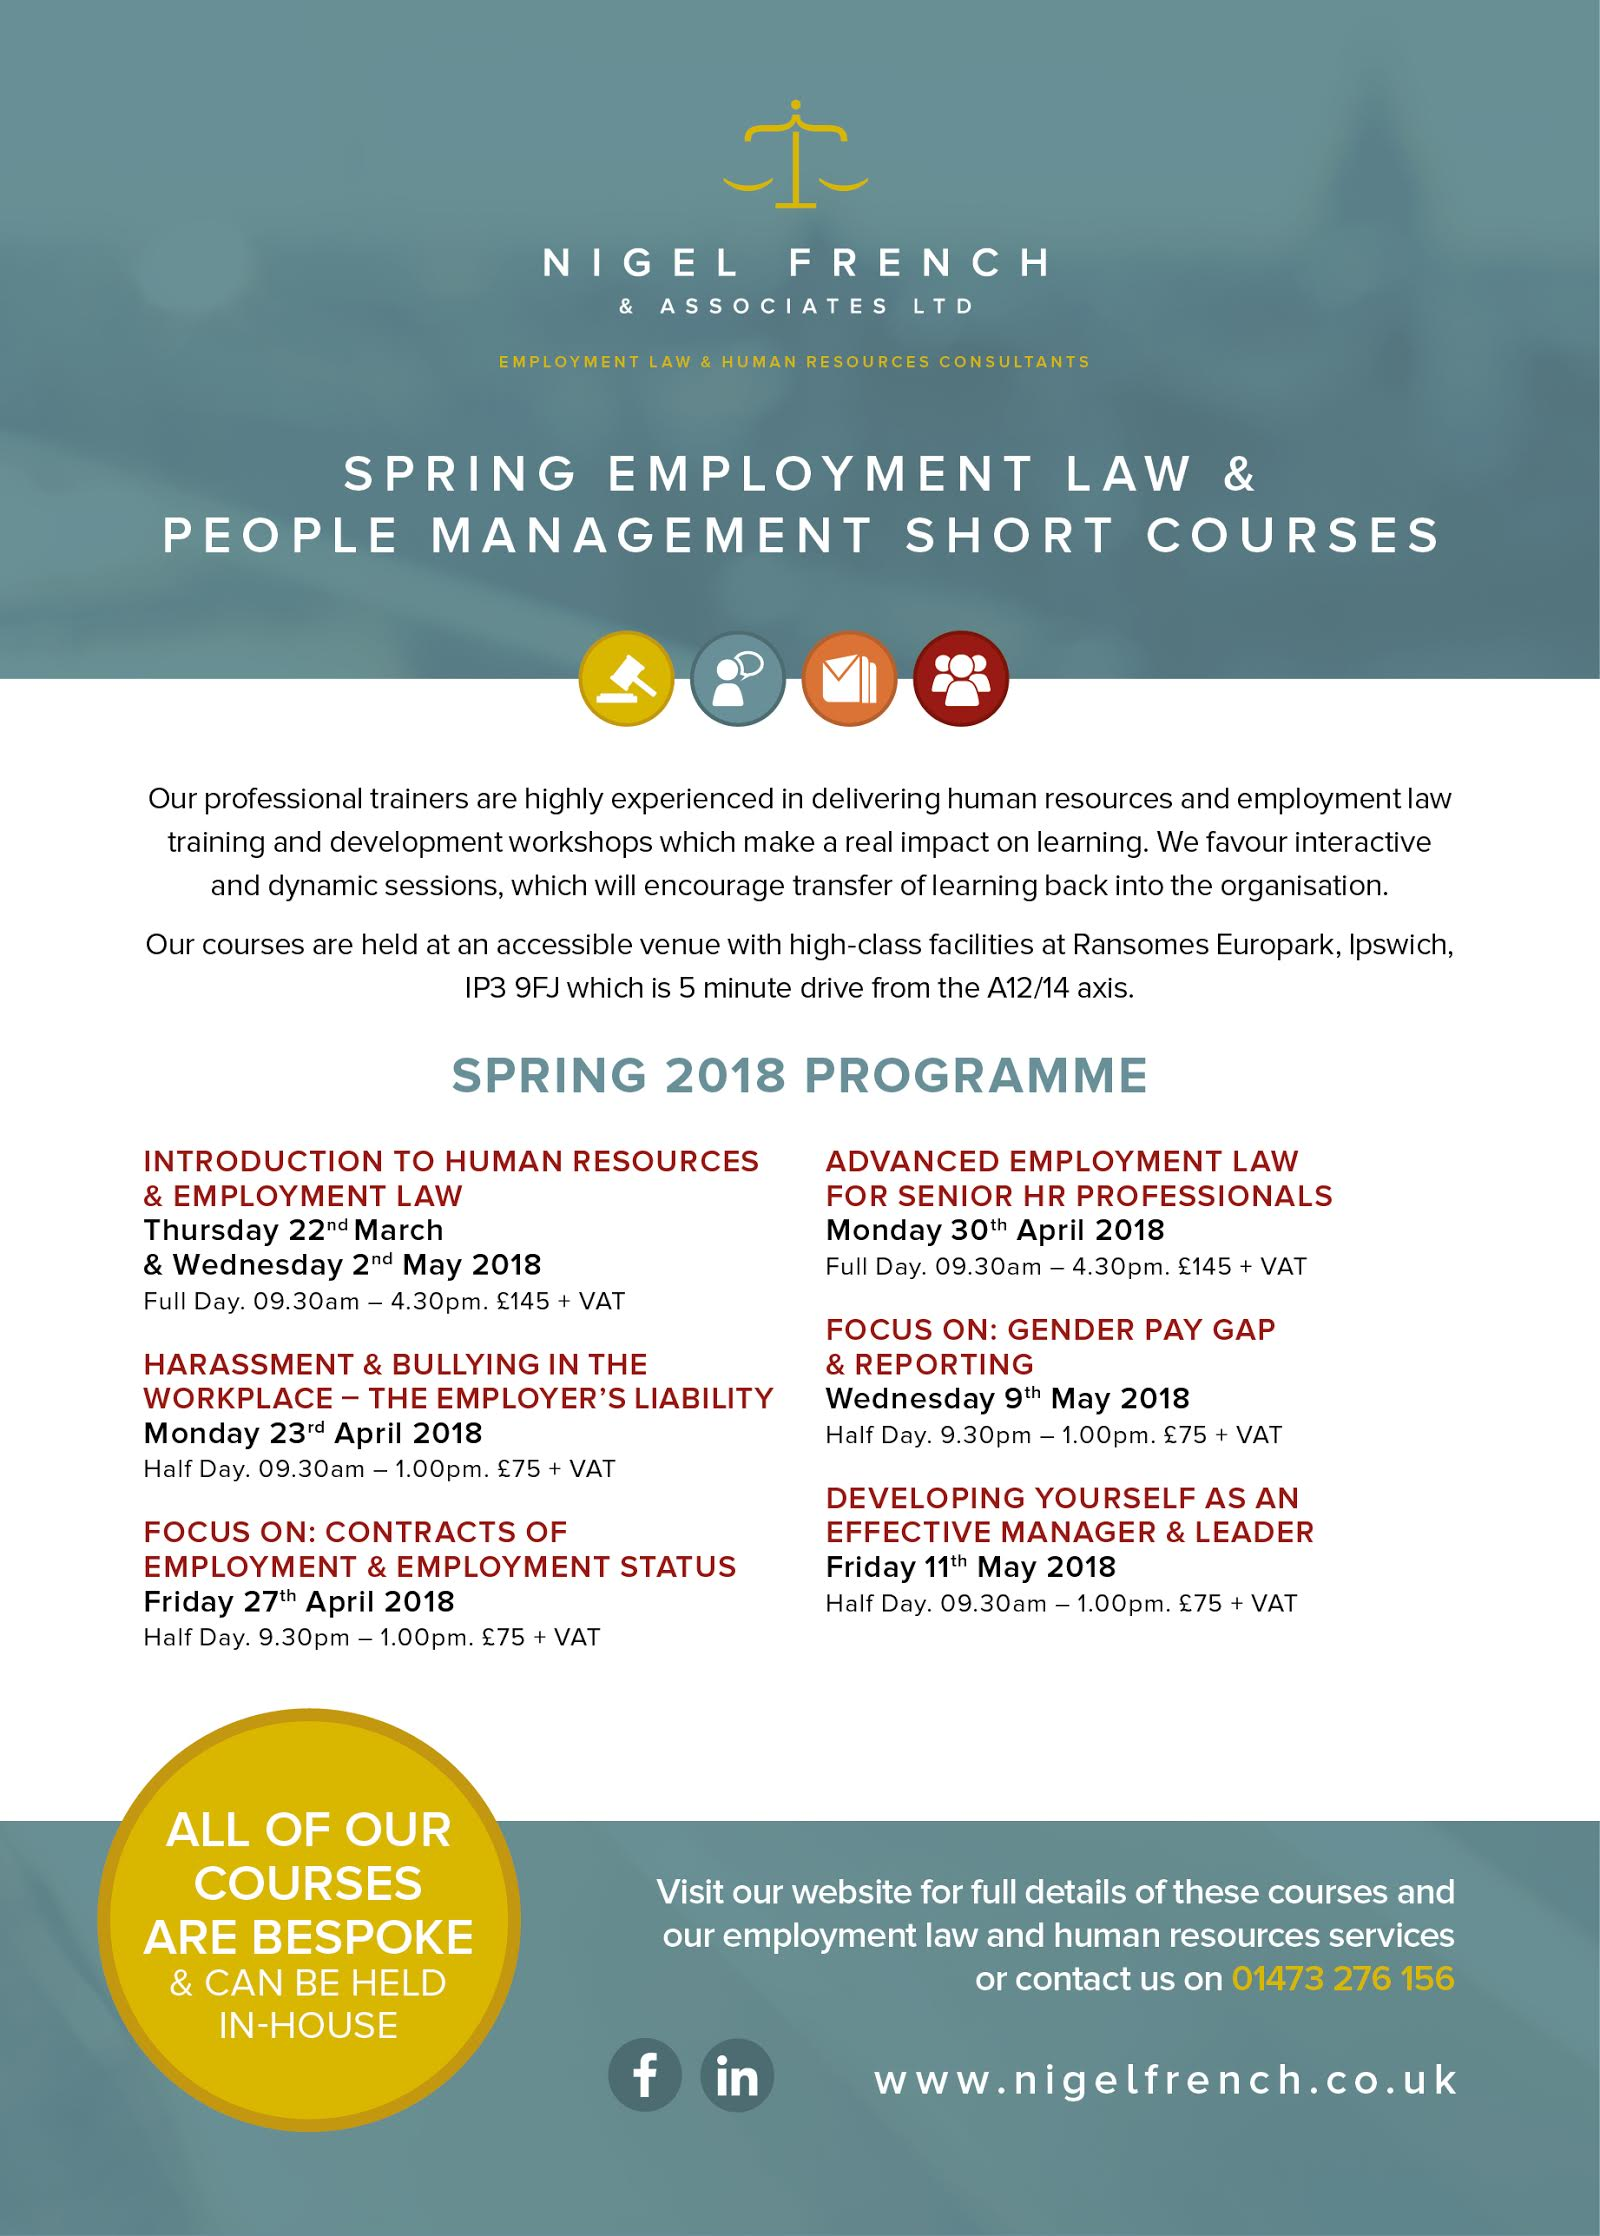 Spring 2018 employment law and people management courses